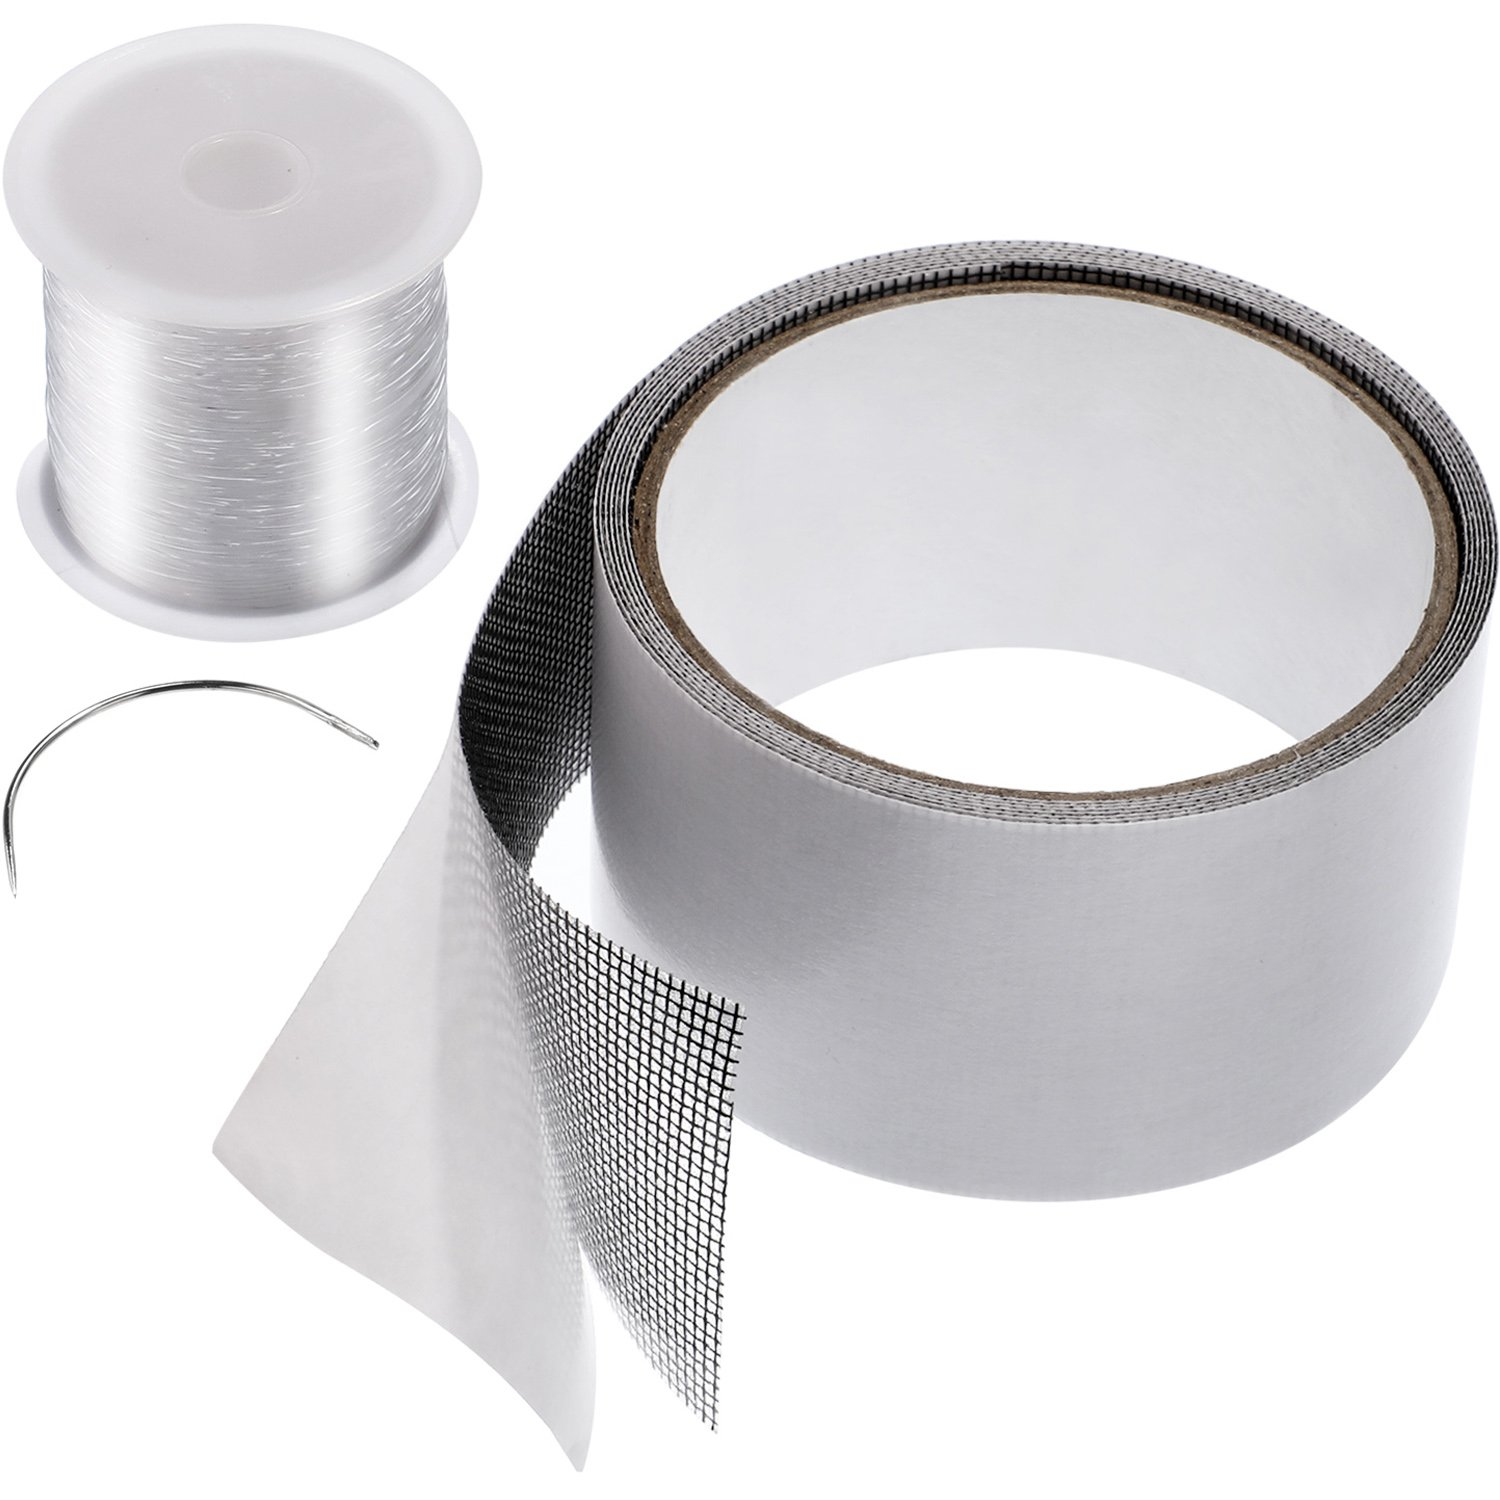 Windows and Door Screen Repair Fiberglass Cloth Mesh Tape with Strong Adhesive Seal, Looper and Repair String for Repair Patch Holes Tears Prevent Mosquitoes Insects Jovitec